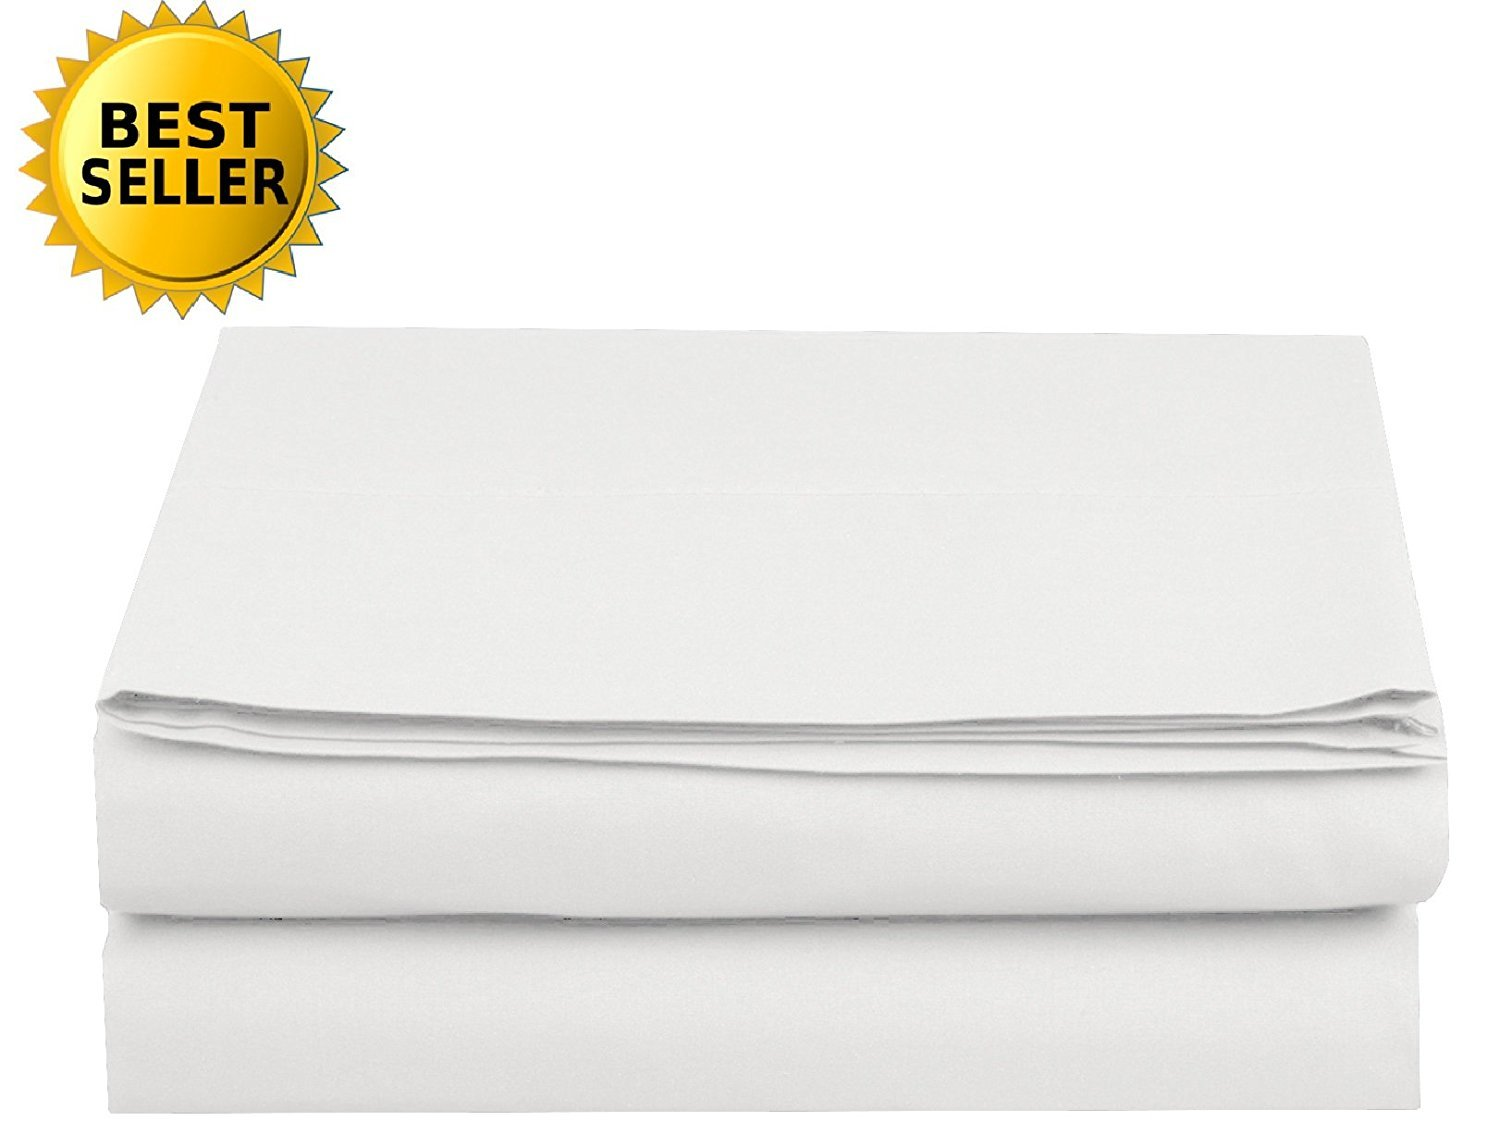 Luxury Fitted Sheet on Amazon Elegant Comfort Wrinkle-Free 1500 Thread Count Egyptian Quality 1-Piece Fitted Sheet, King Size, White by Elegant Comfort